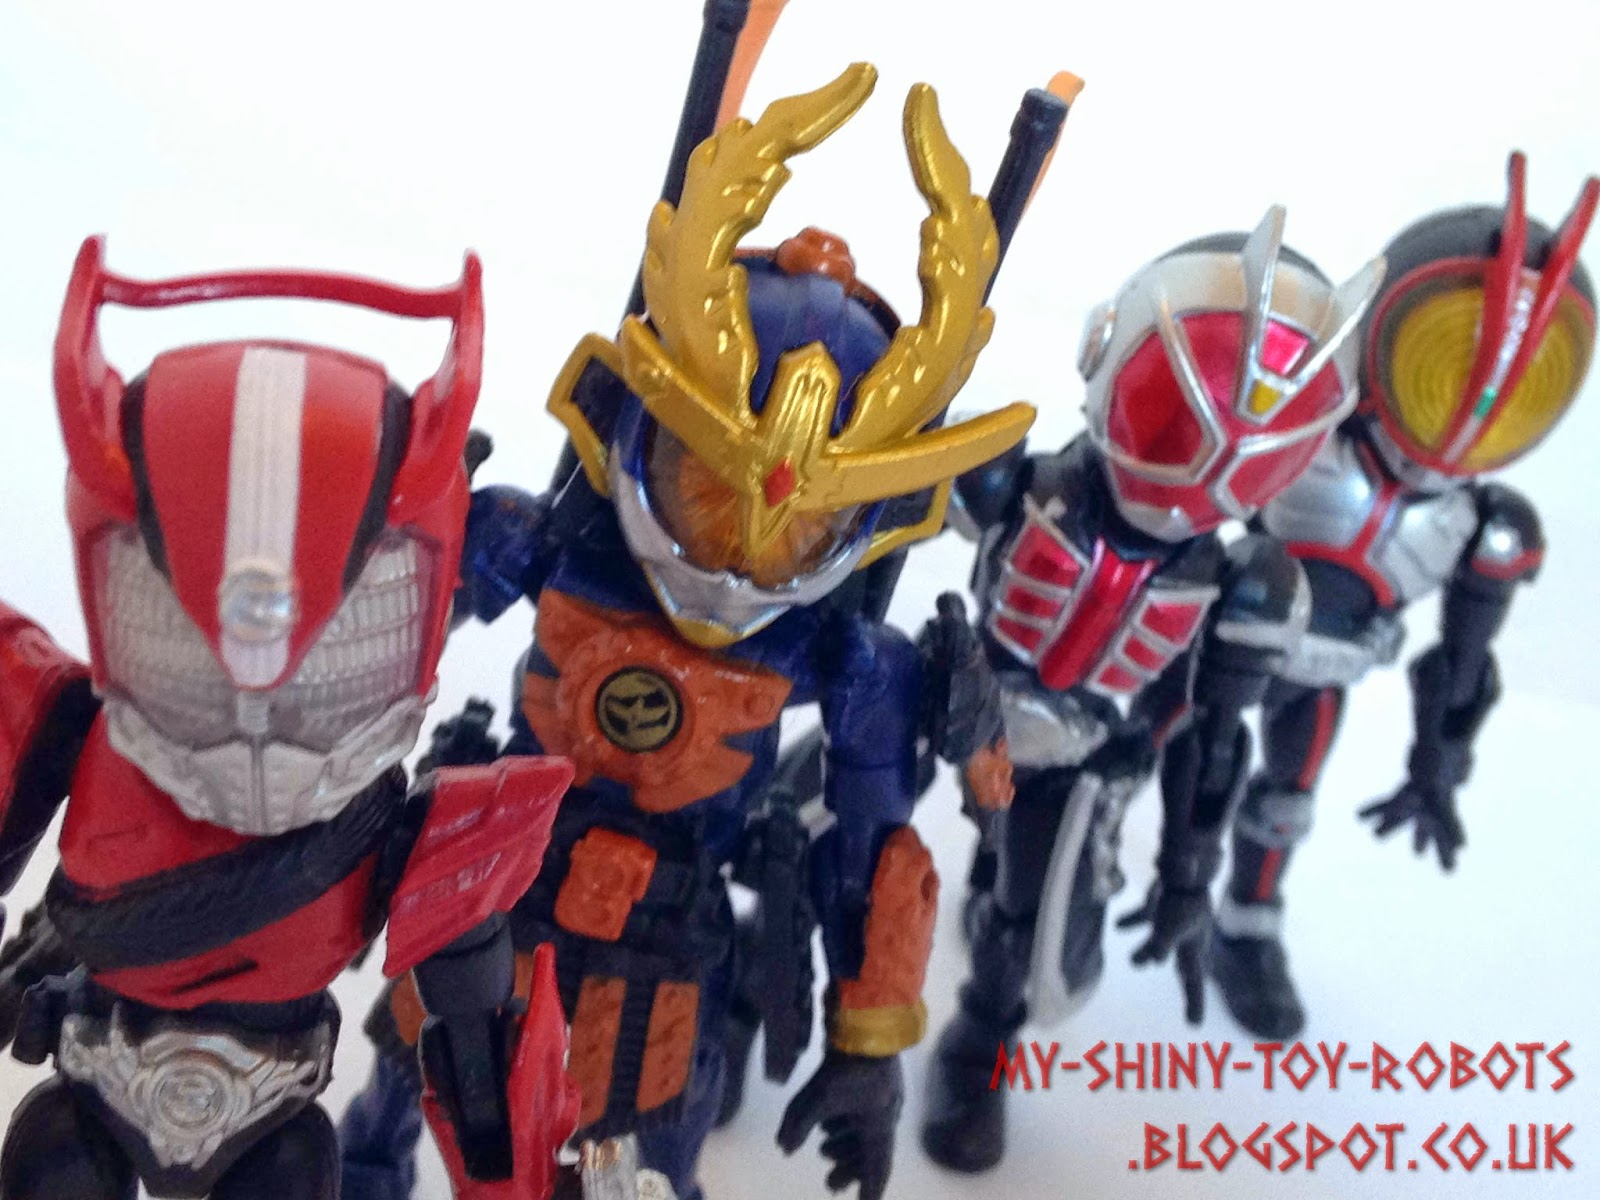 66action Kamen Riders Wave 4